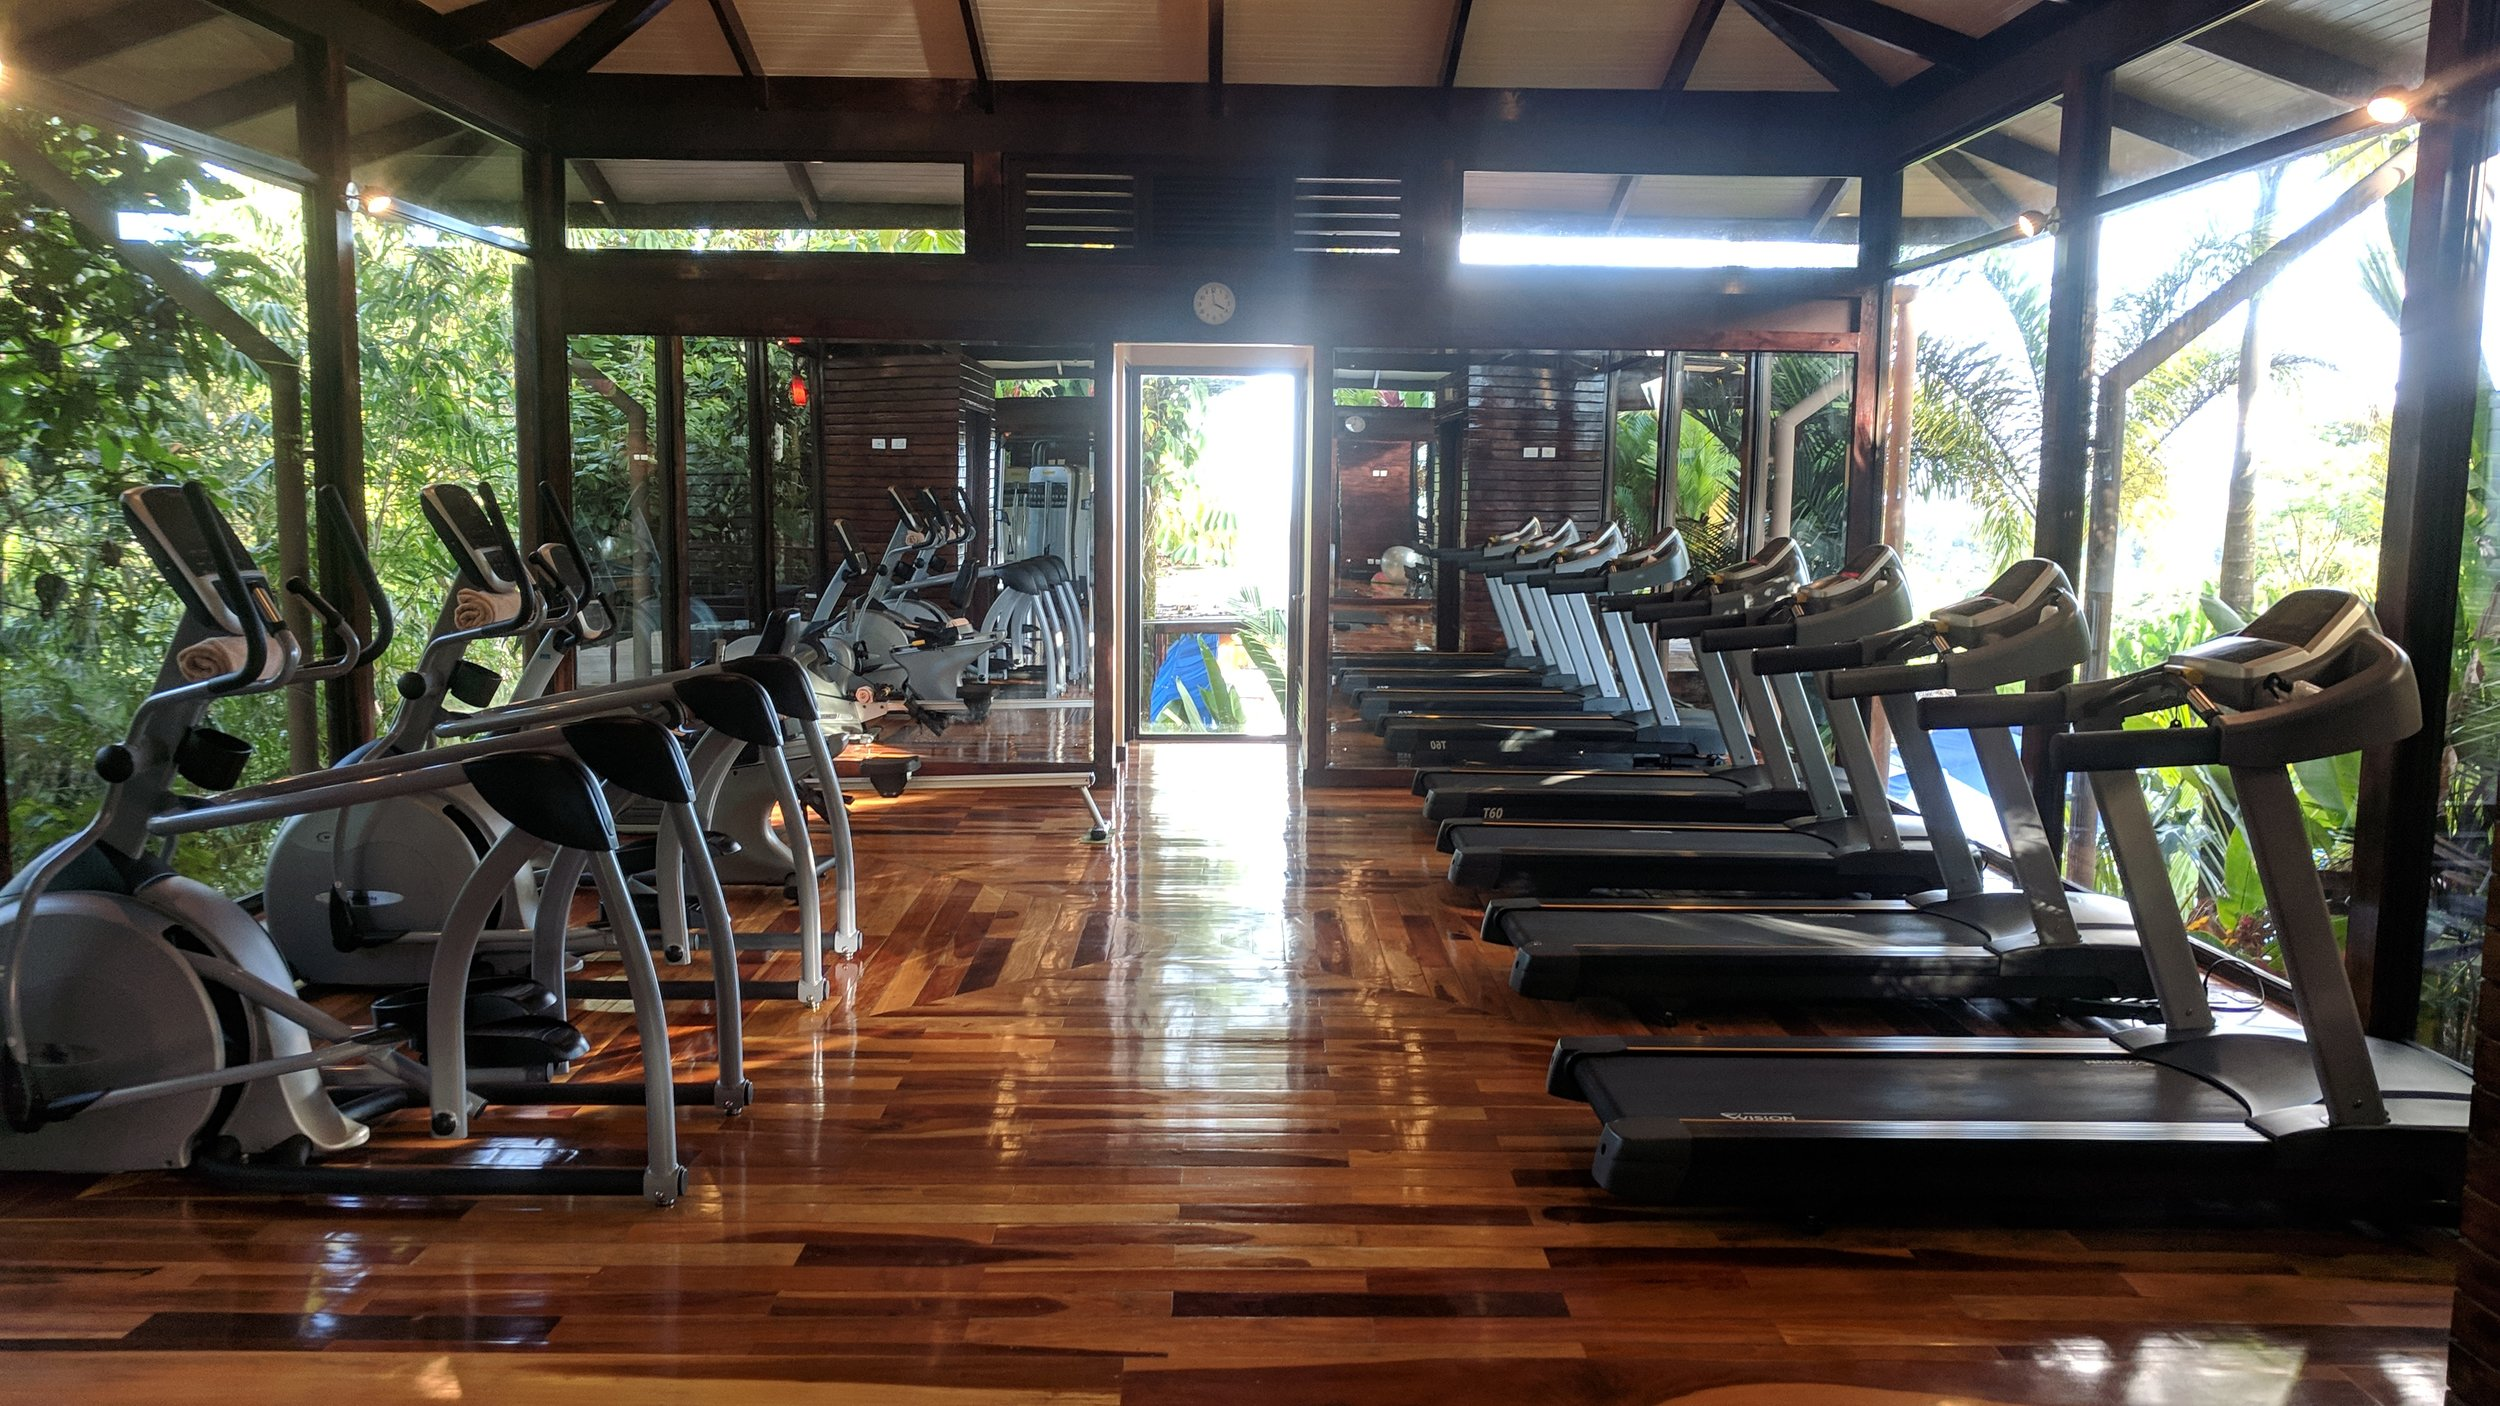 The fitness center was great. Plenty of equipment, lots of natural sunlight, and it was well air conditioned / ventilated.